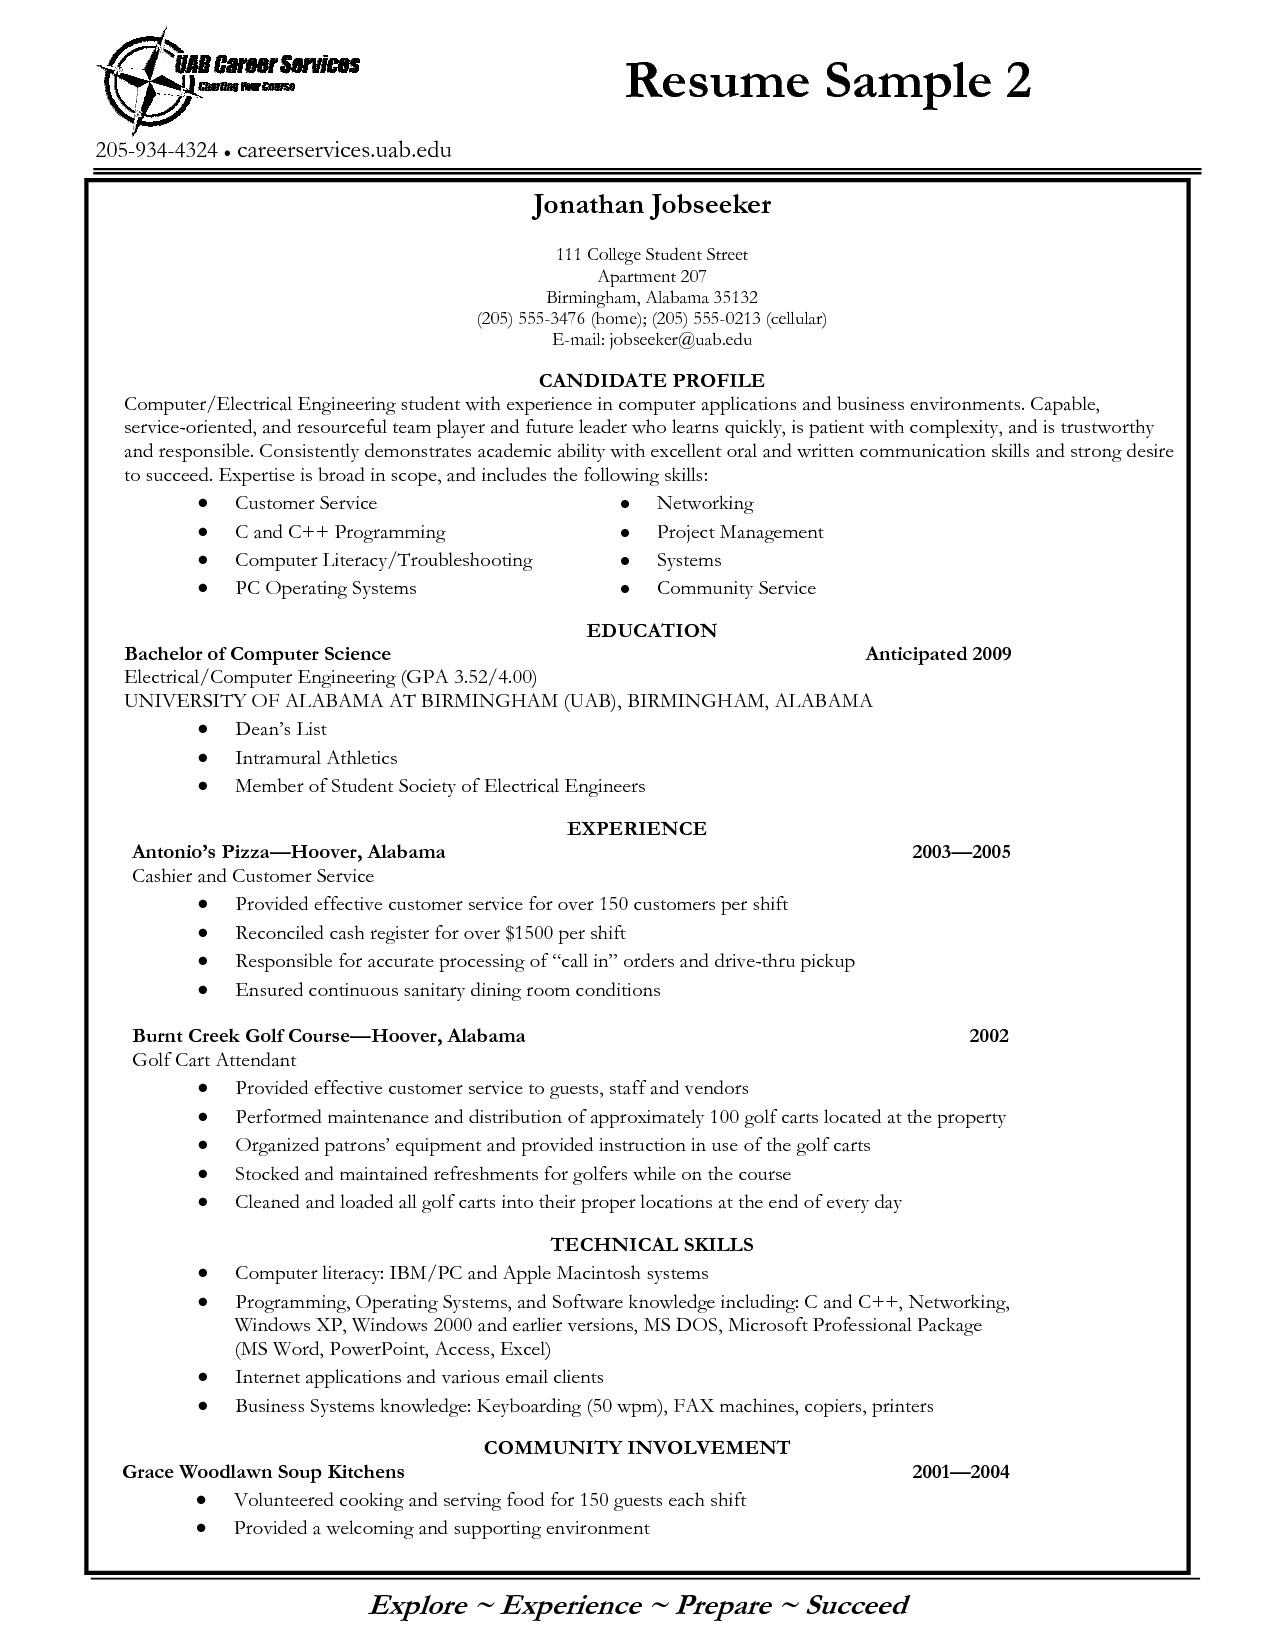 Resume Examples For College Students Tags College Graduate Resume No Experience College Graduate Resume